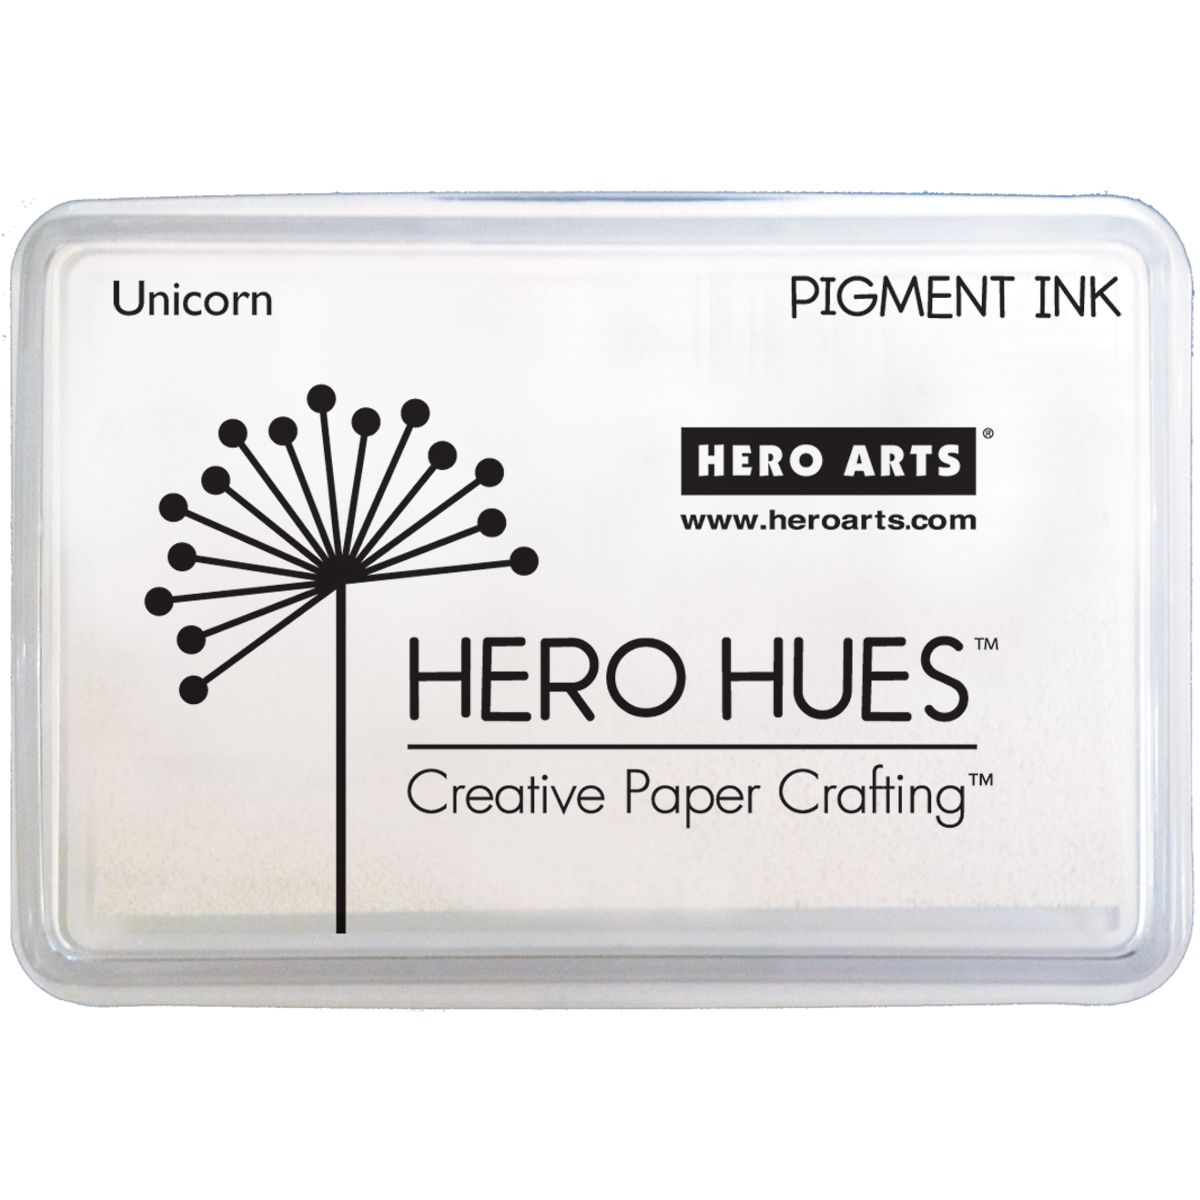 Hero Arts Pigment Ink Pad-Unicorn